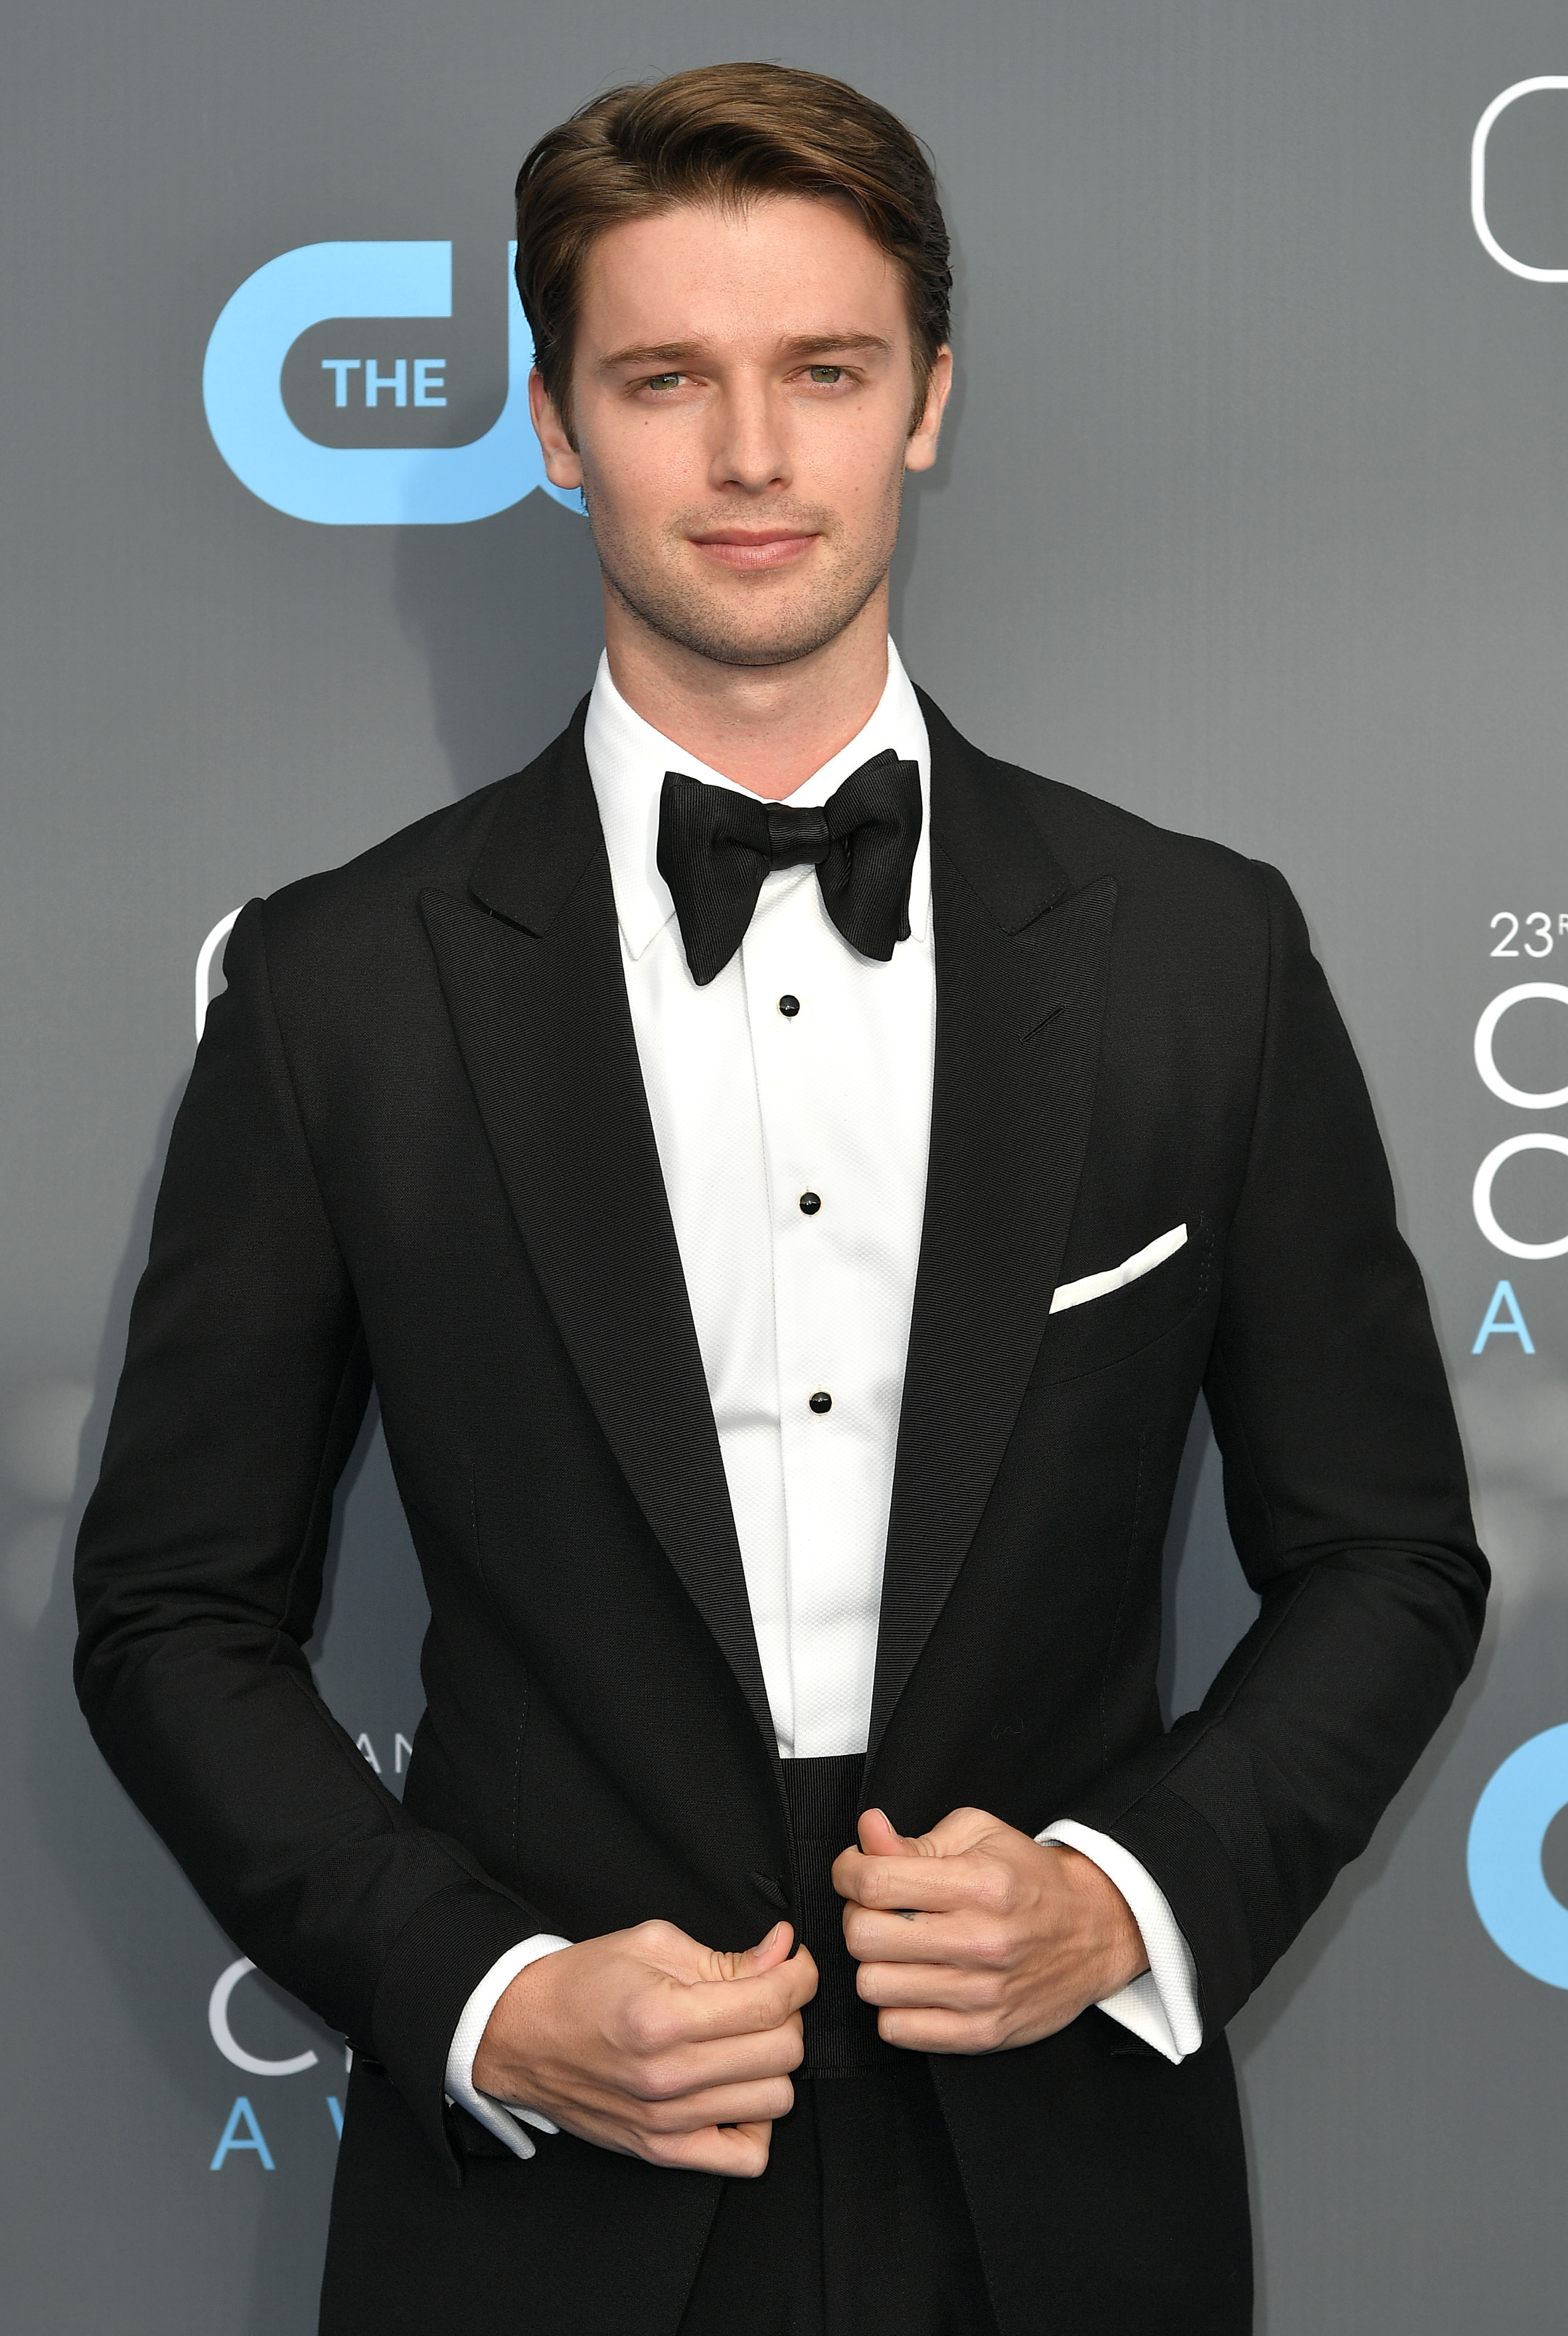 Patrick Schwarzenegger attends The 23rd Annual Critics' Choice Awards at Barker Hangar in Santa Monica, California, on Jan. 11, 2018.